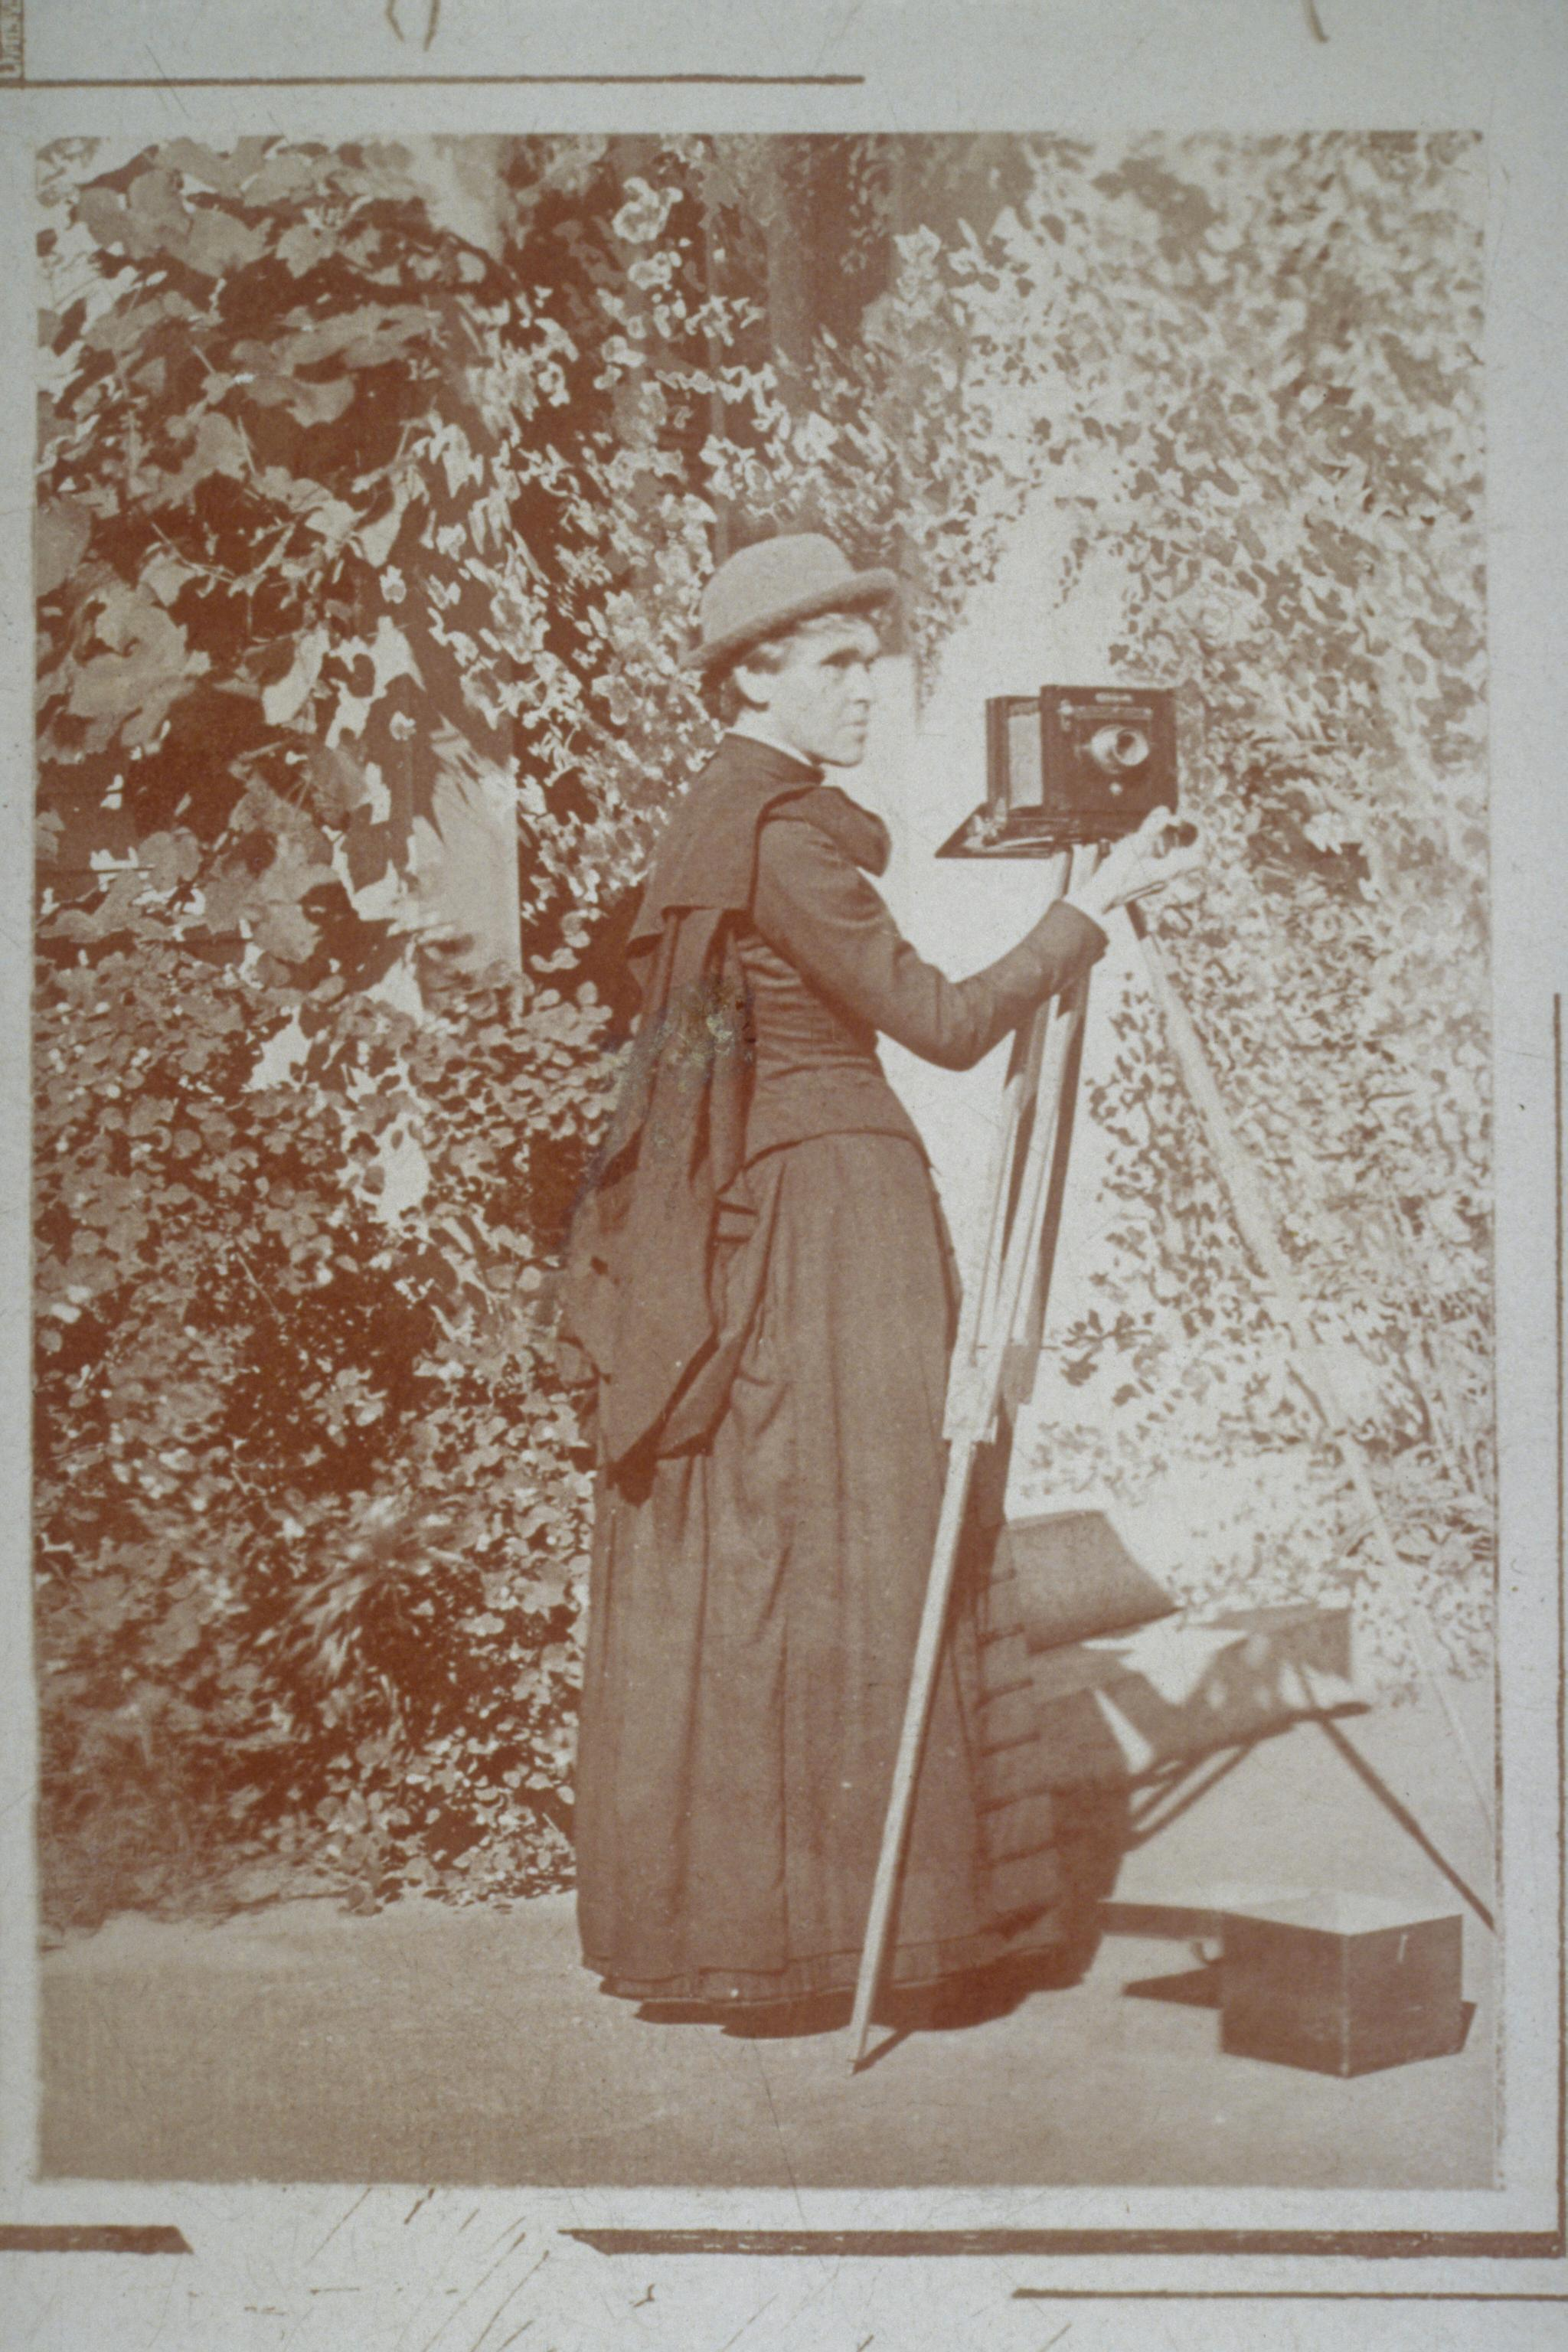 https://upload.wikimedia.org/wikipedia/commons/a/af/Cover_illustration_of_E._Jane_Gay_with_her_camera%2C_ca._1889-1897._%2823713911211%29.jpg